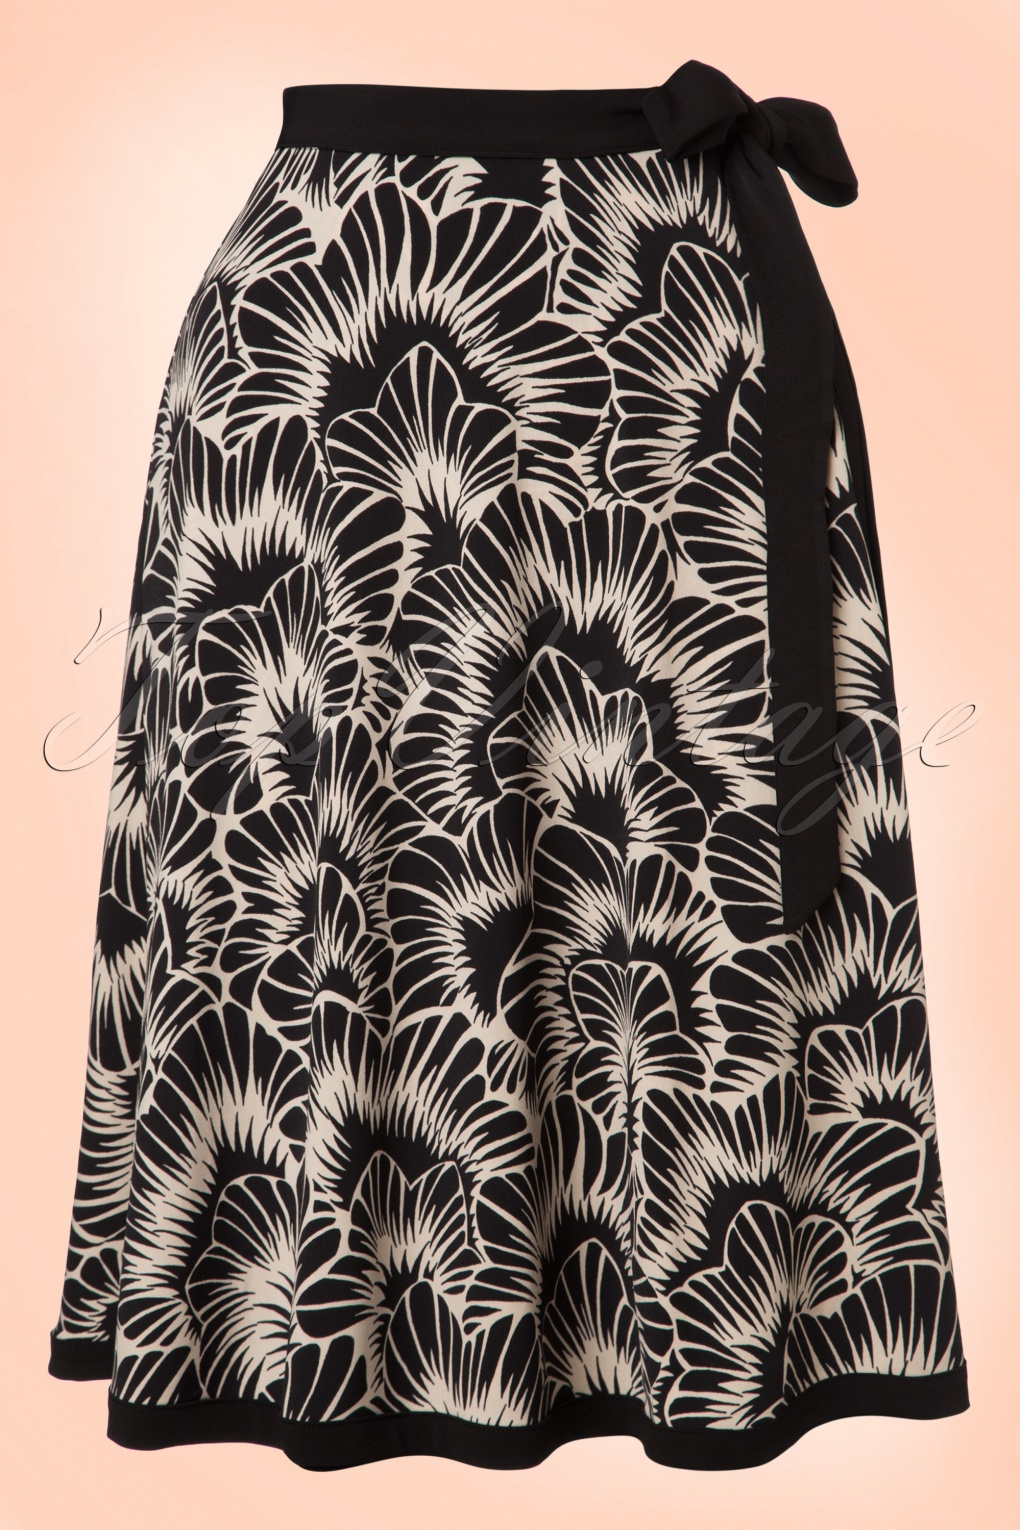 Retro Skirts: Vintage, Pencil, Circle, & Plus Sizes 60s Blizzy Wrap Skirt in Black and Cream £67.90 AT vintagedancer.com